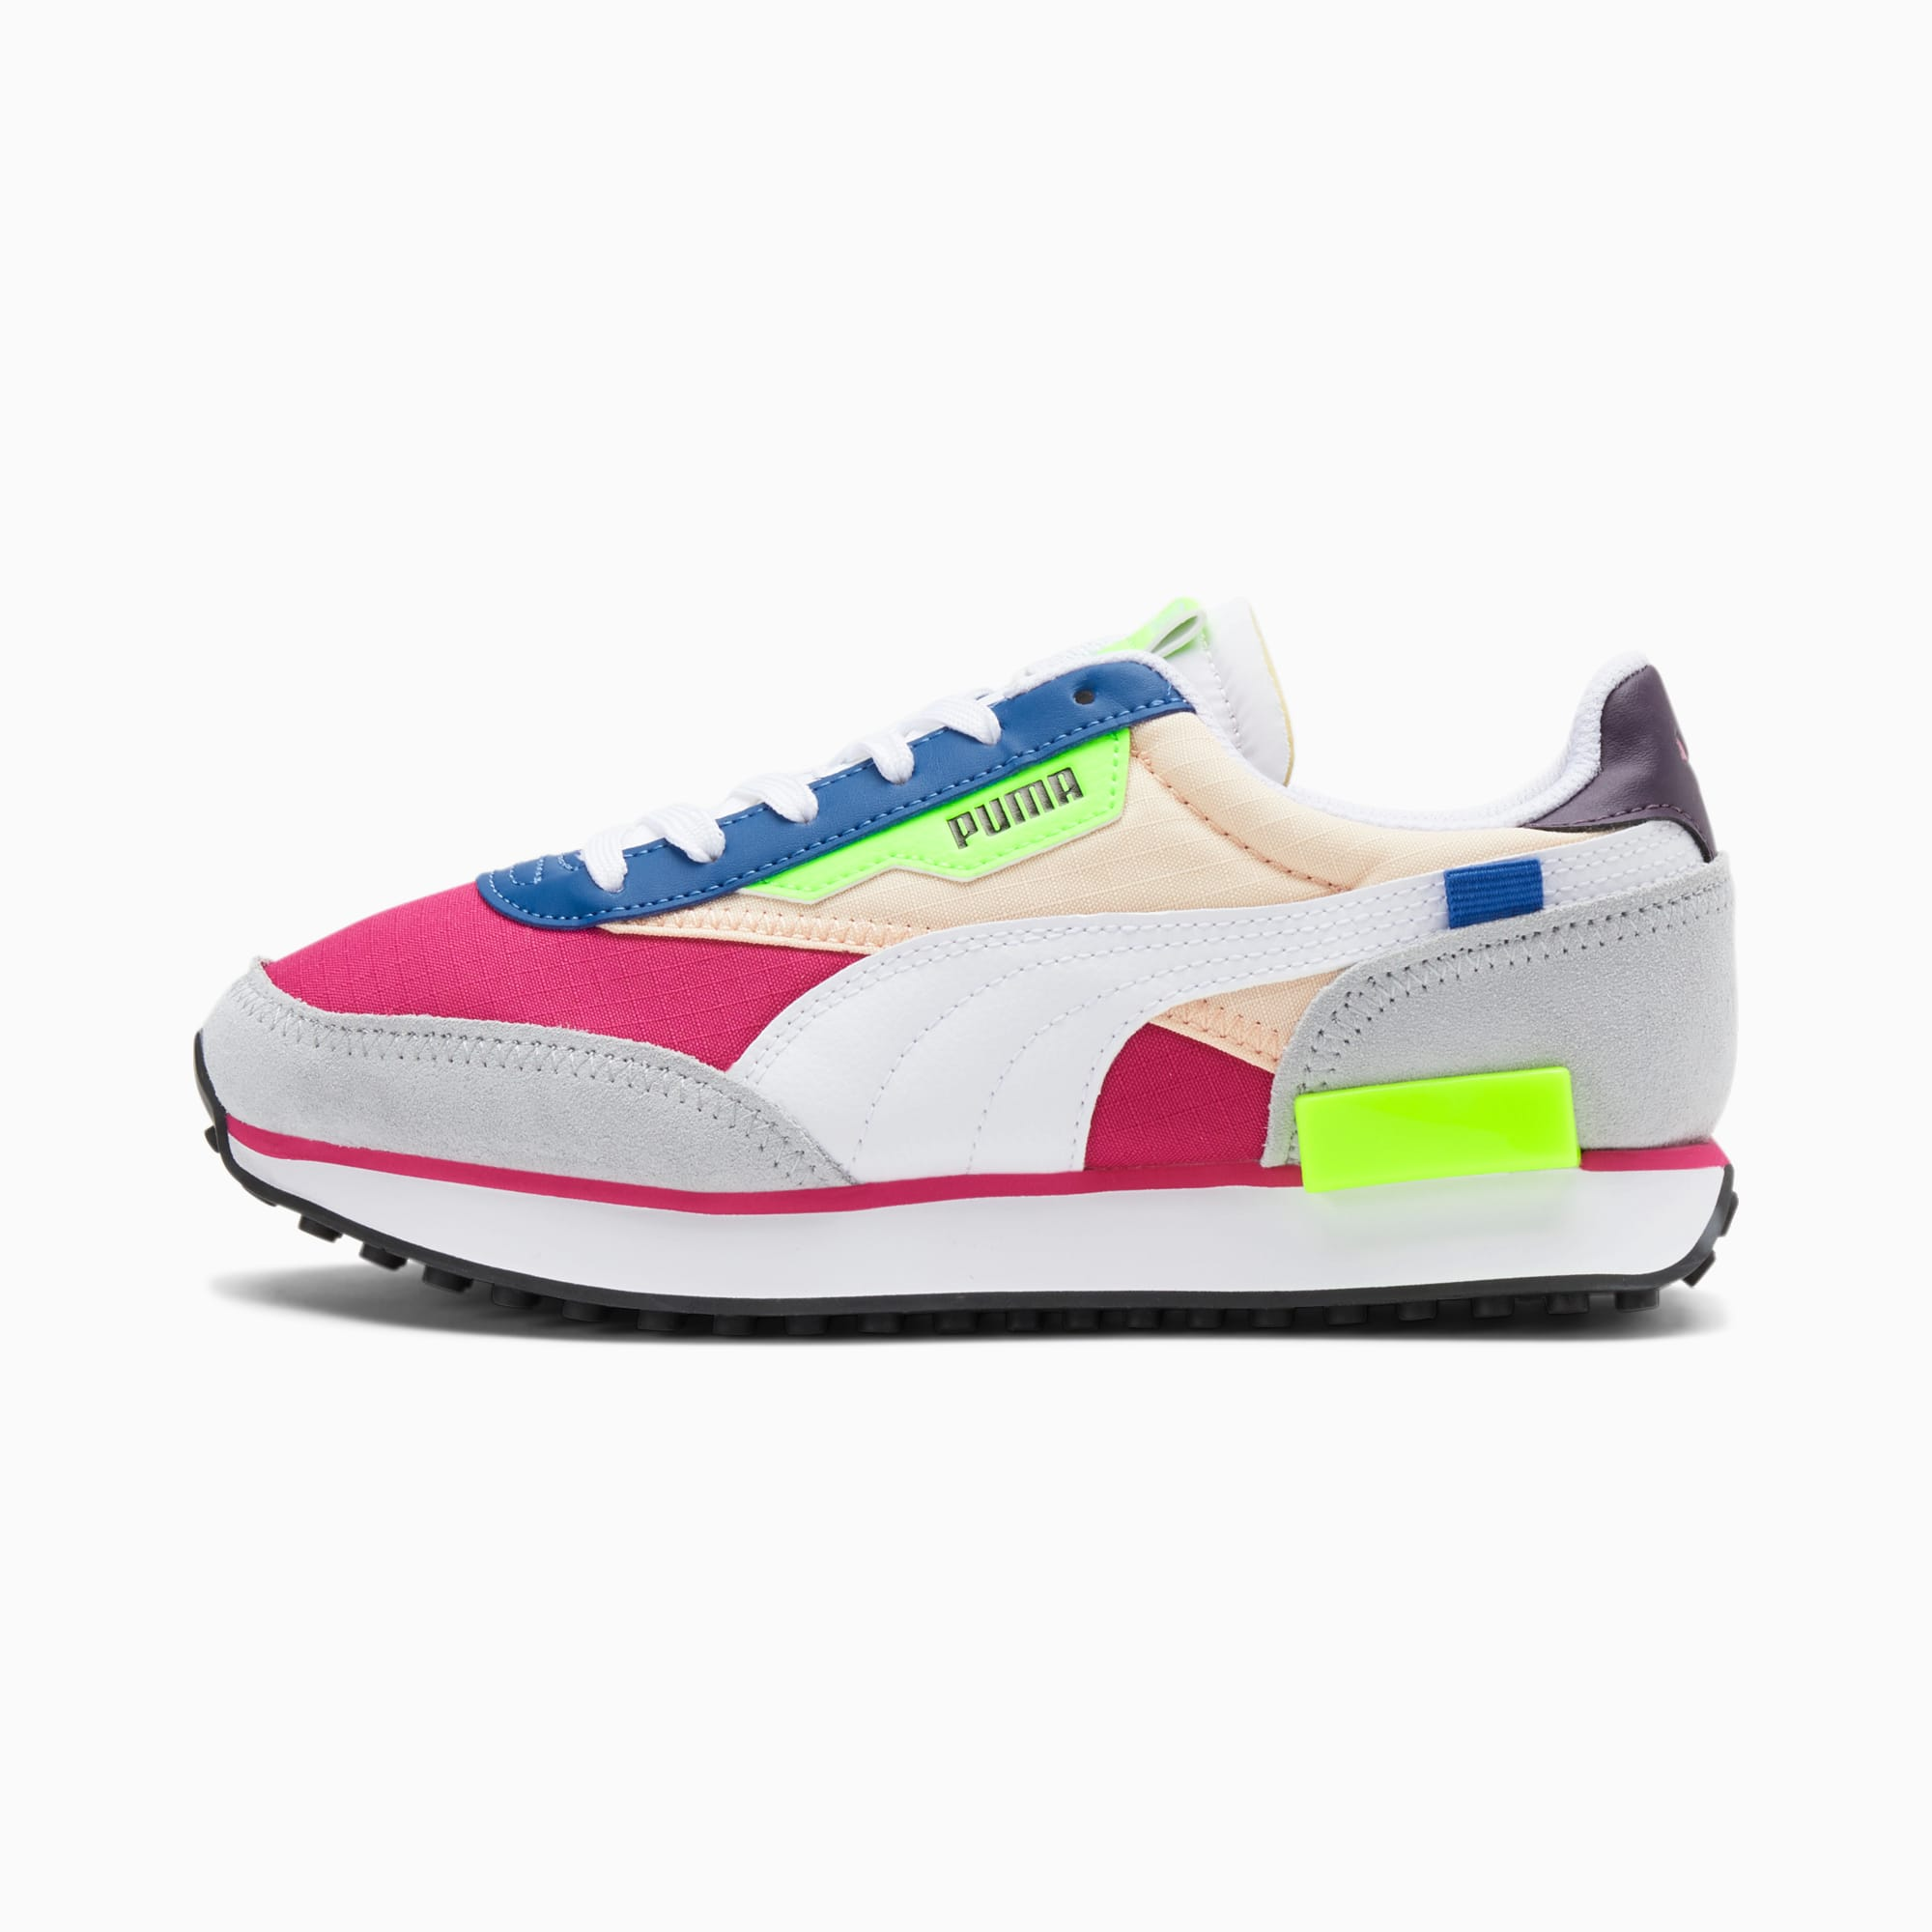 Future Rider Play On Women's Sneakers